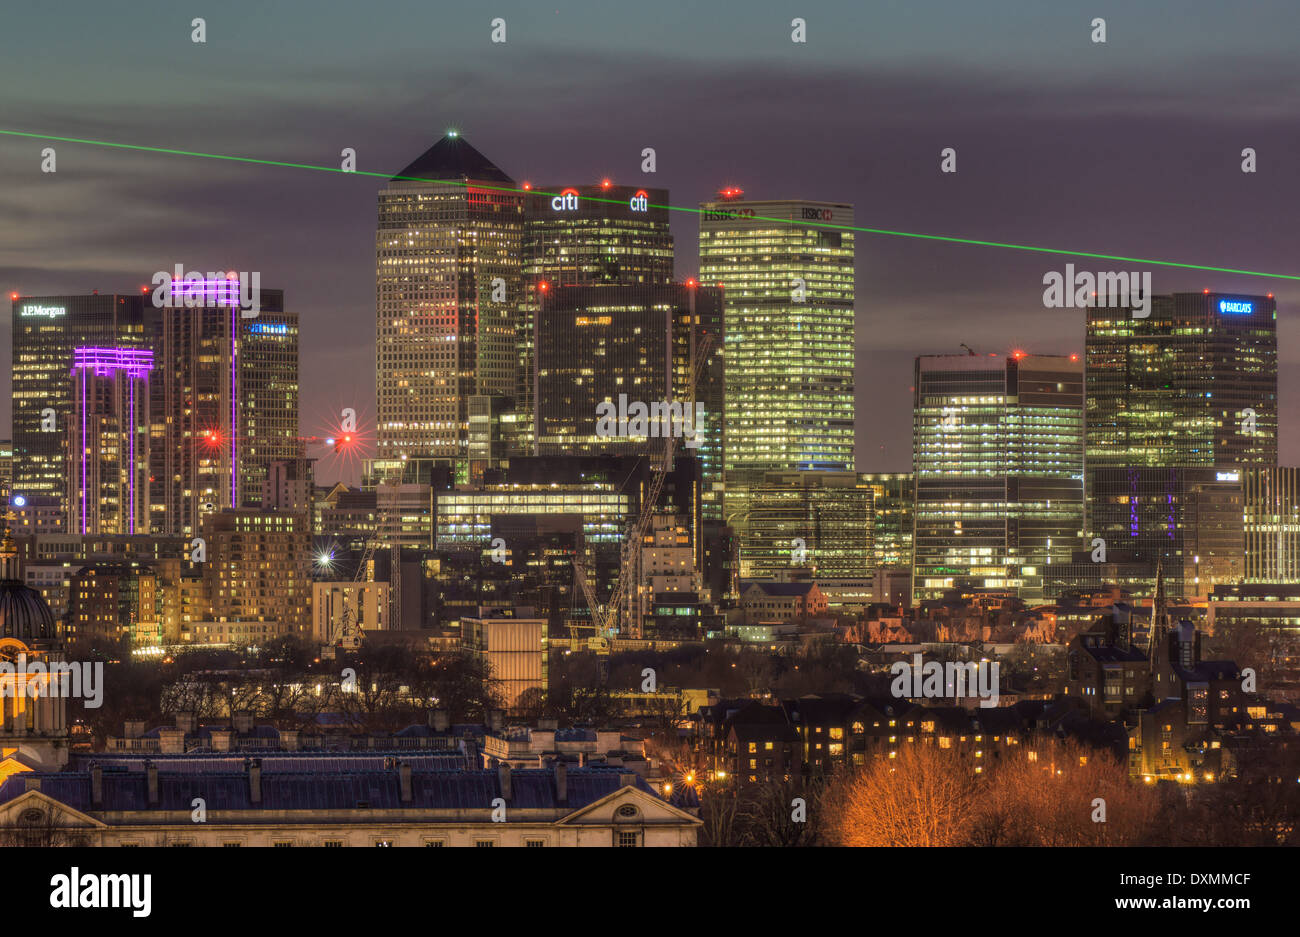 Canary Wharf, London Docklands - Stock Image